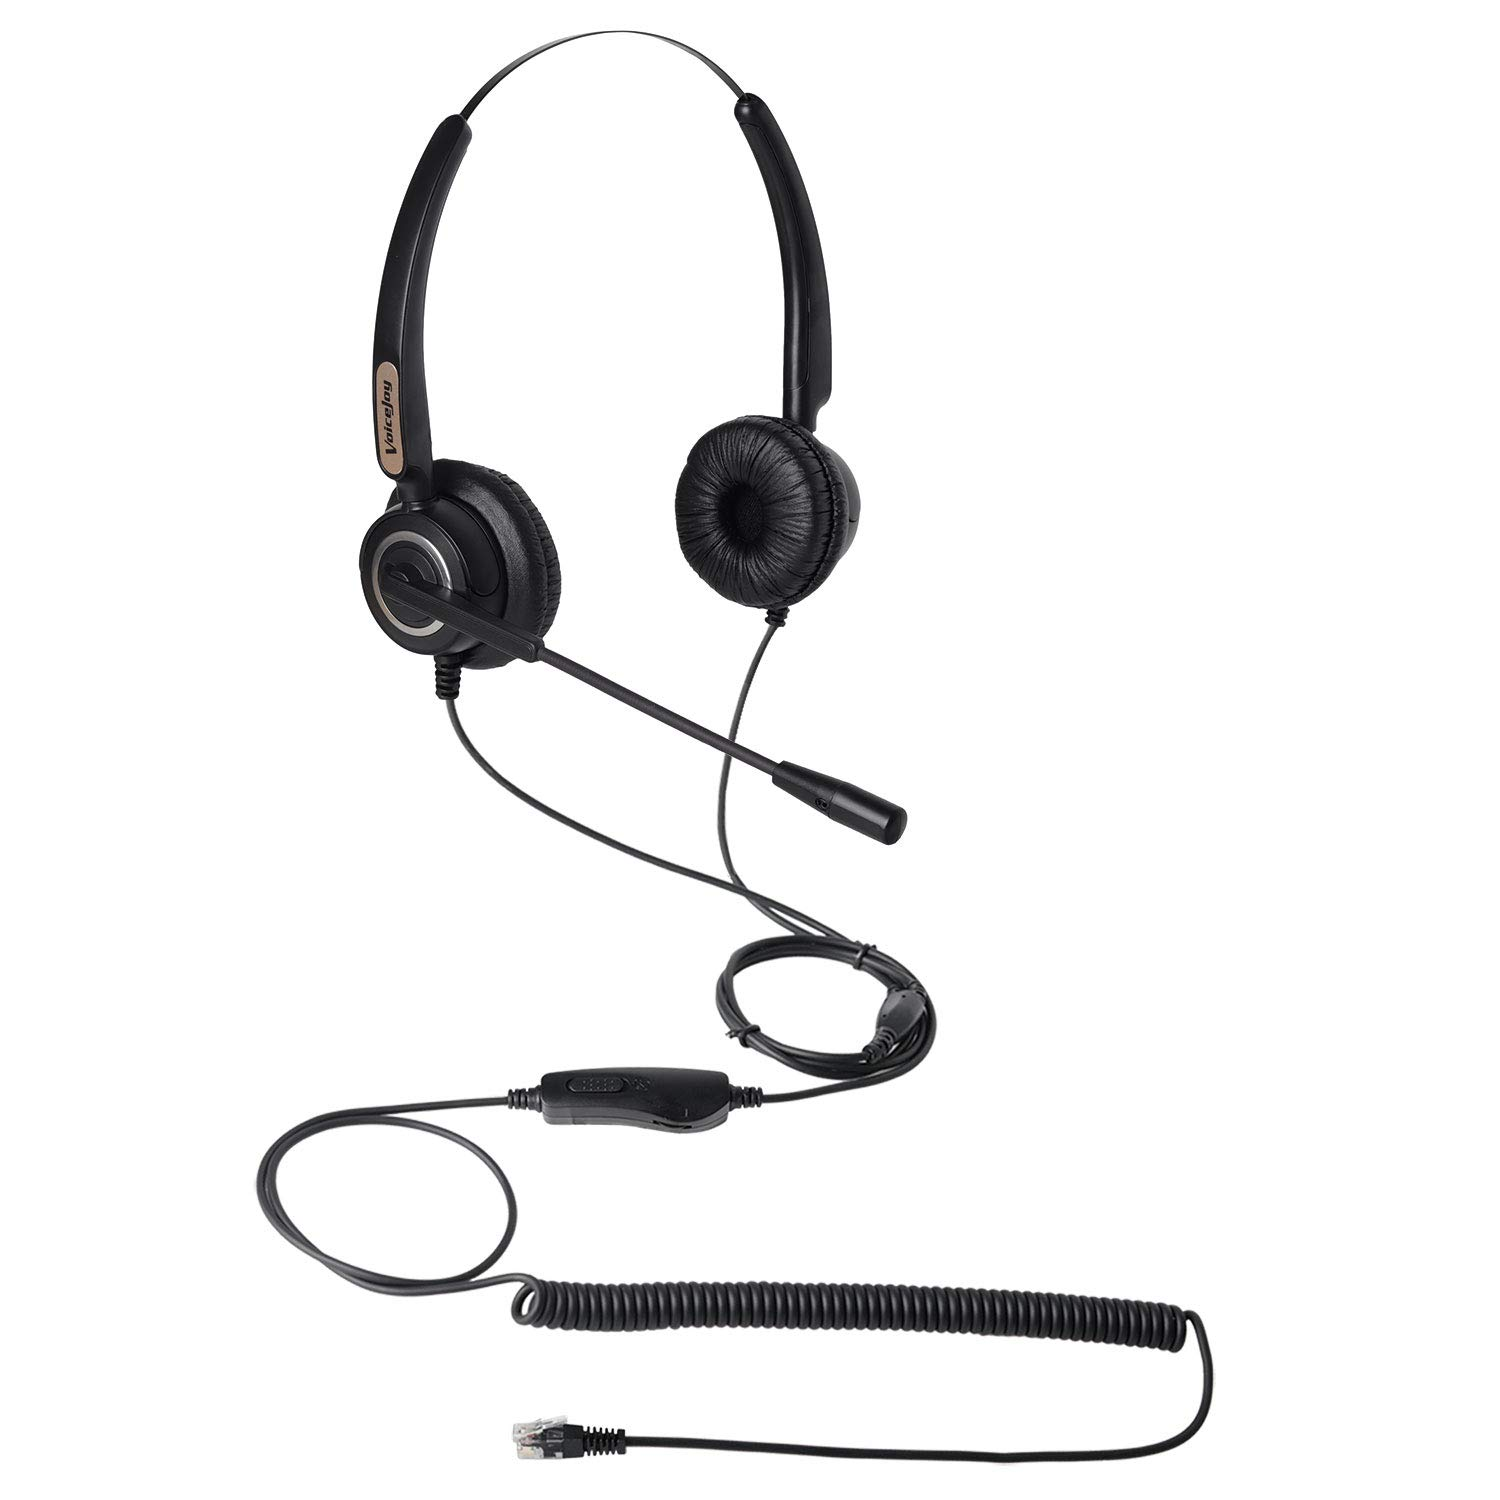 Office Headset with RJ9 Plug for Cisco IP Phones 7940 7960 7970 6921 Series 8811,8841,8851,8861,8941,8945,8961,9951,9971 etc